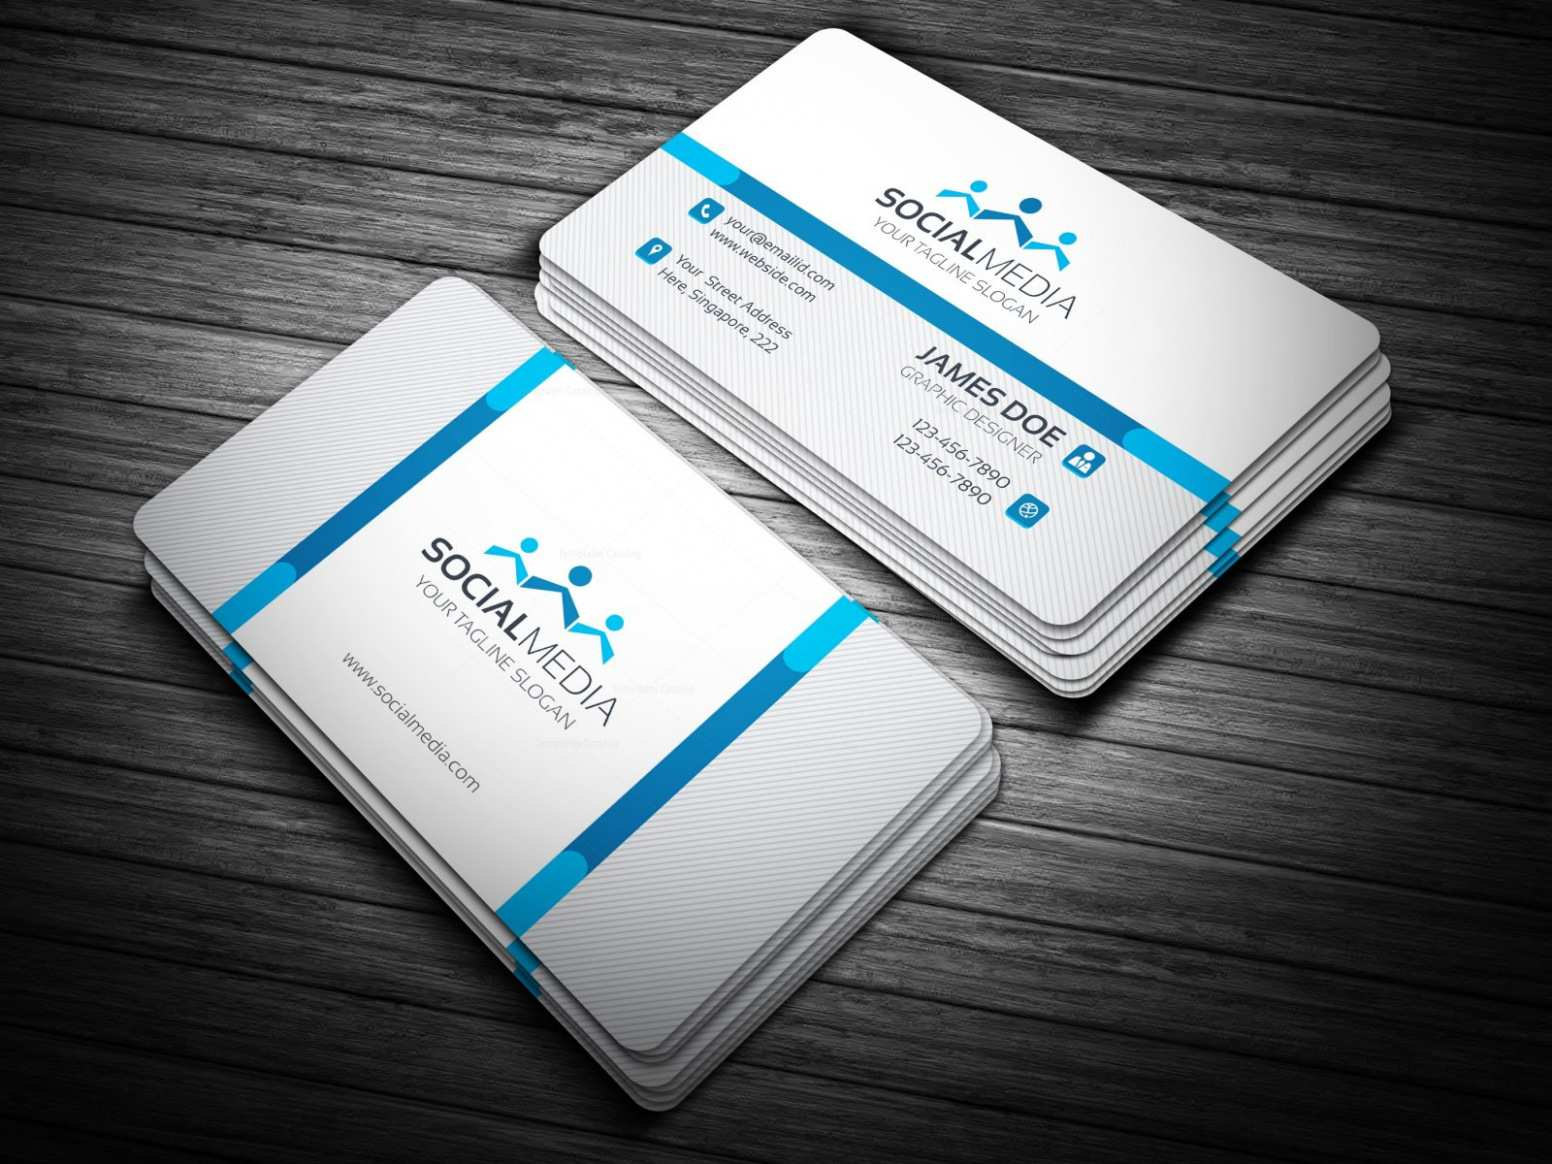 72 Customize Blank Business Card Template Staples in Photoshop for Blank Business Card Template Staples